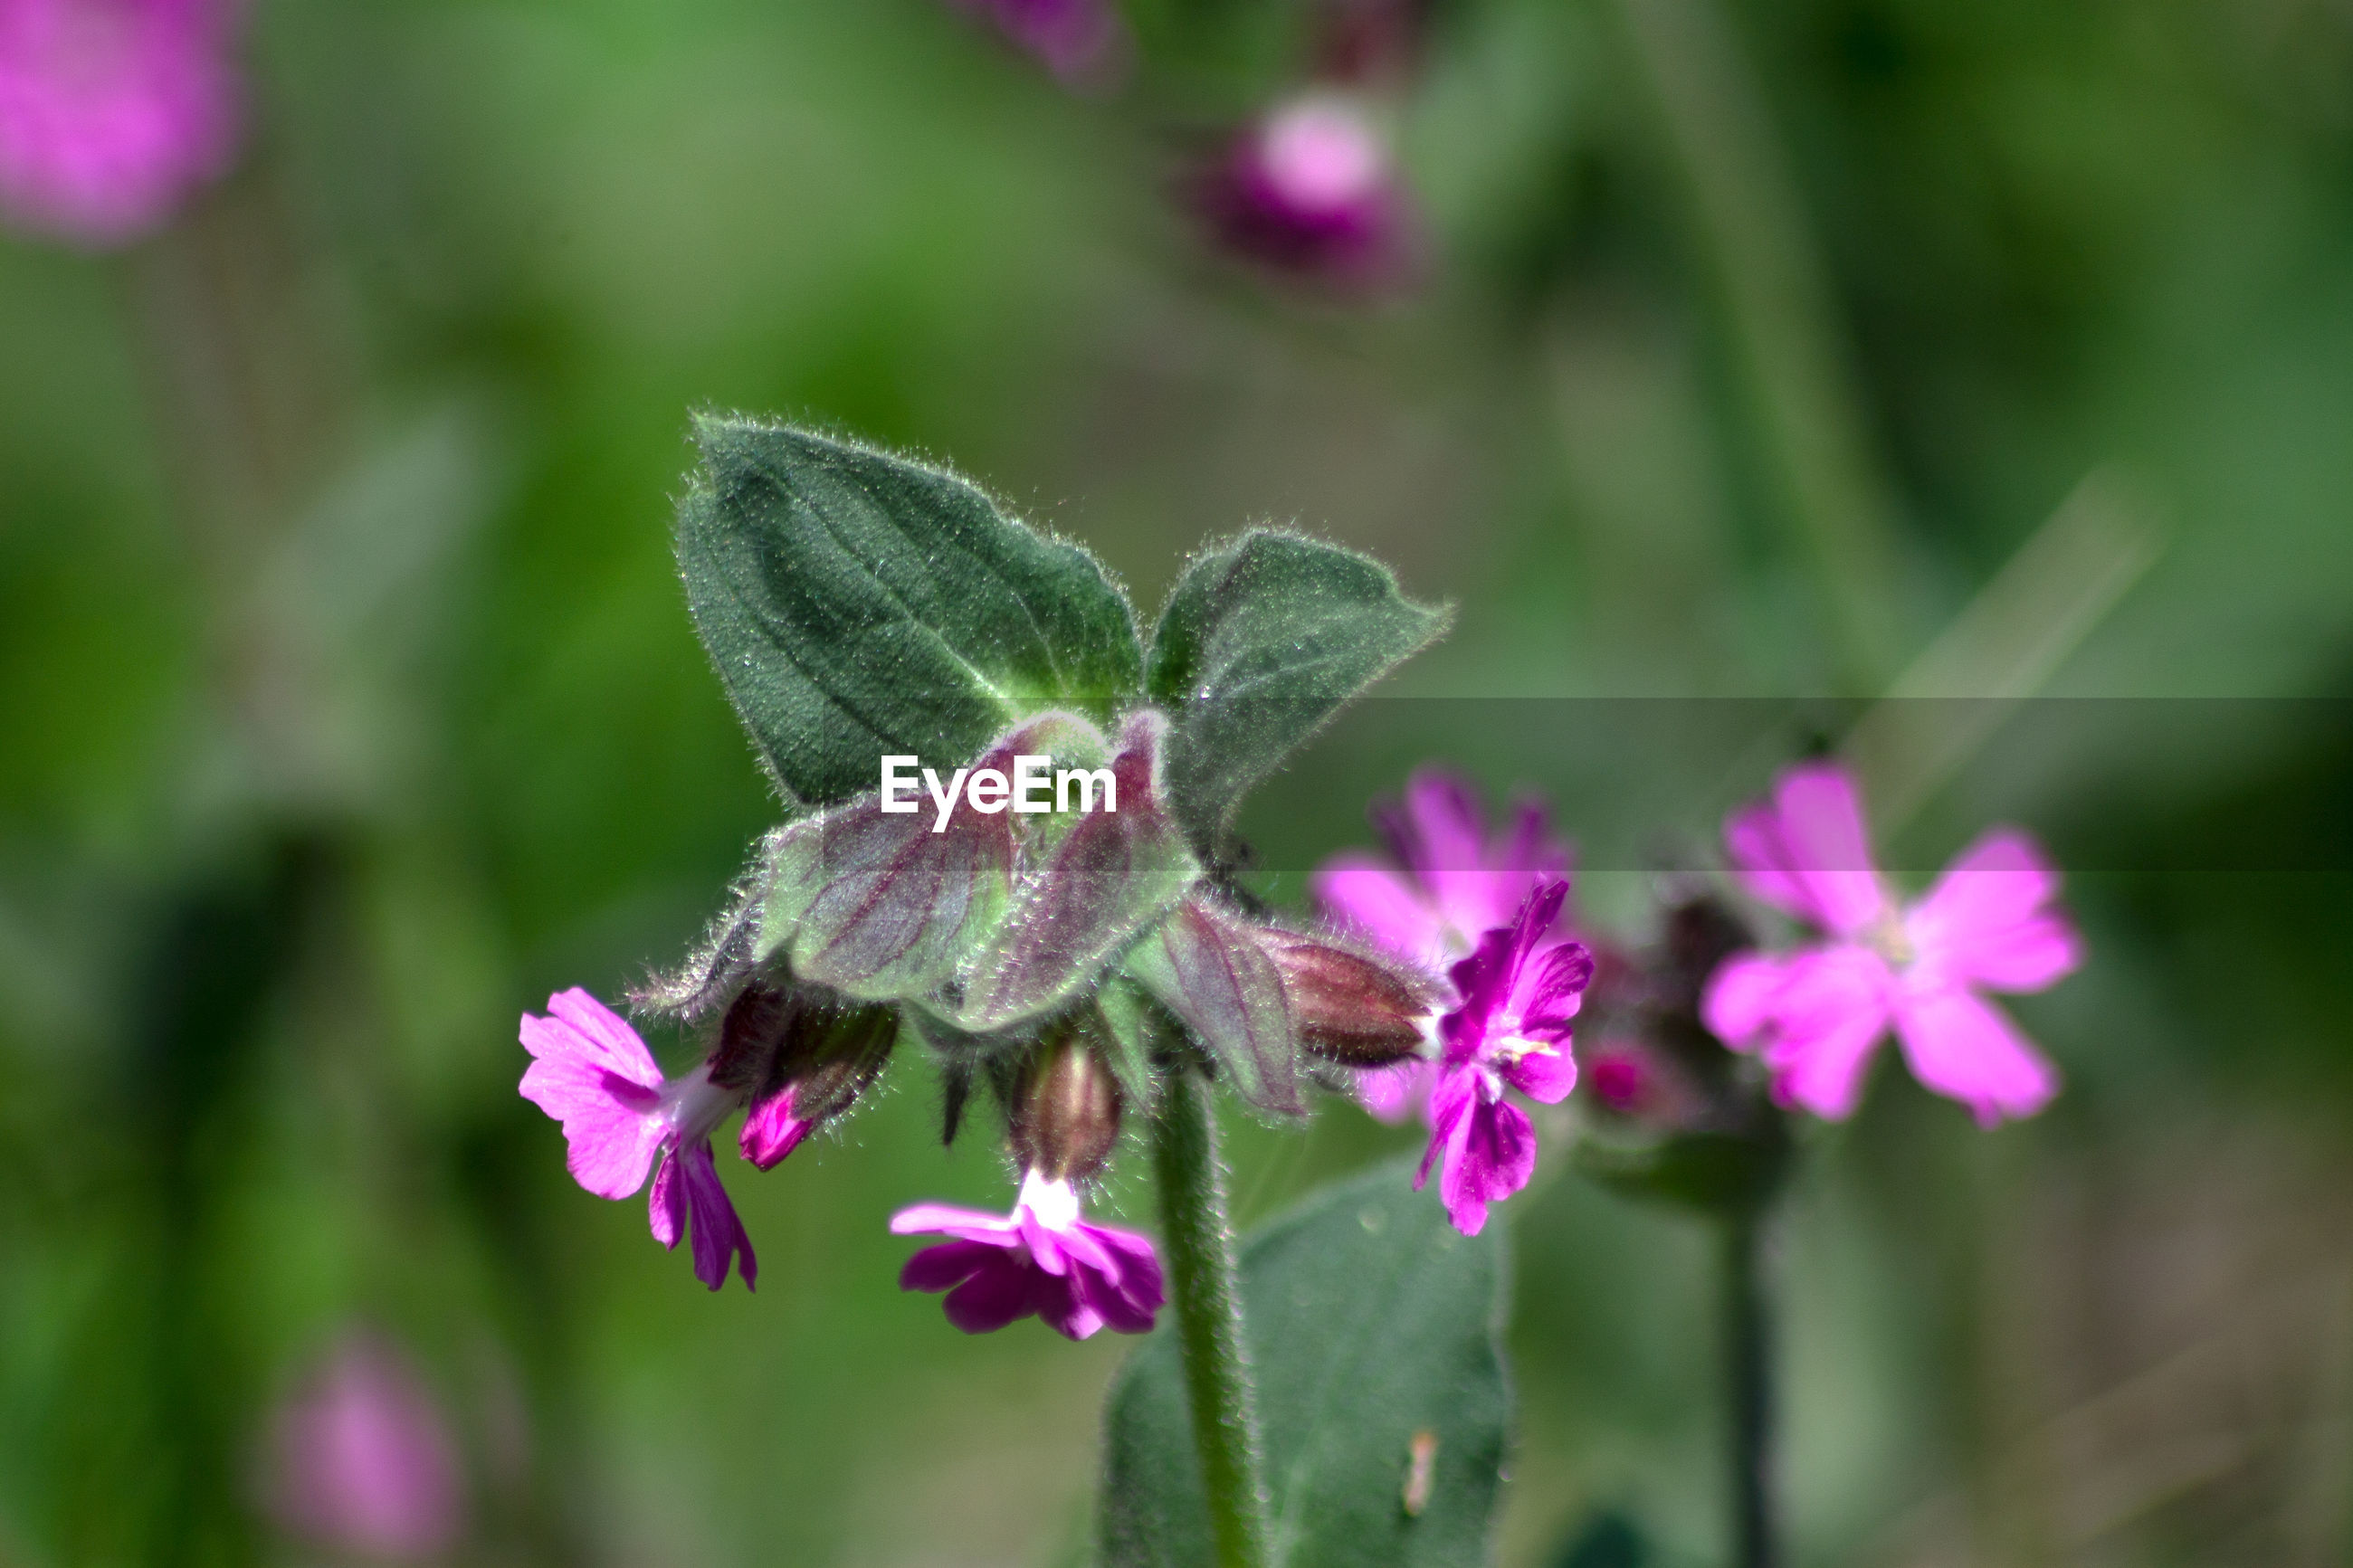 CLOSE-UP OF PINK POLLINATING ON PURPLE FLOWERING PLANT